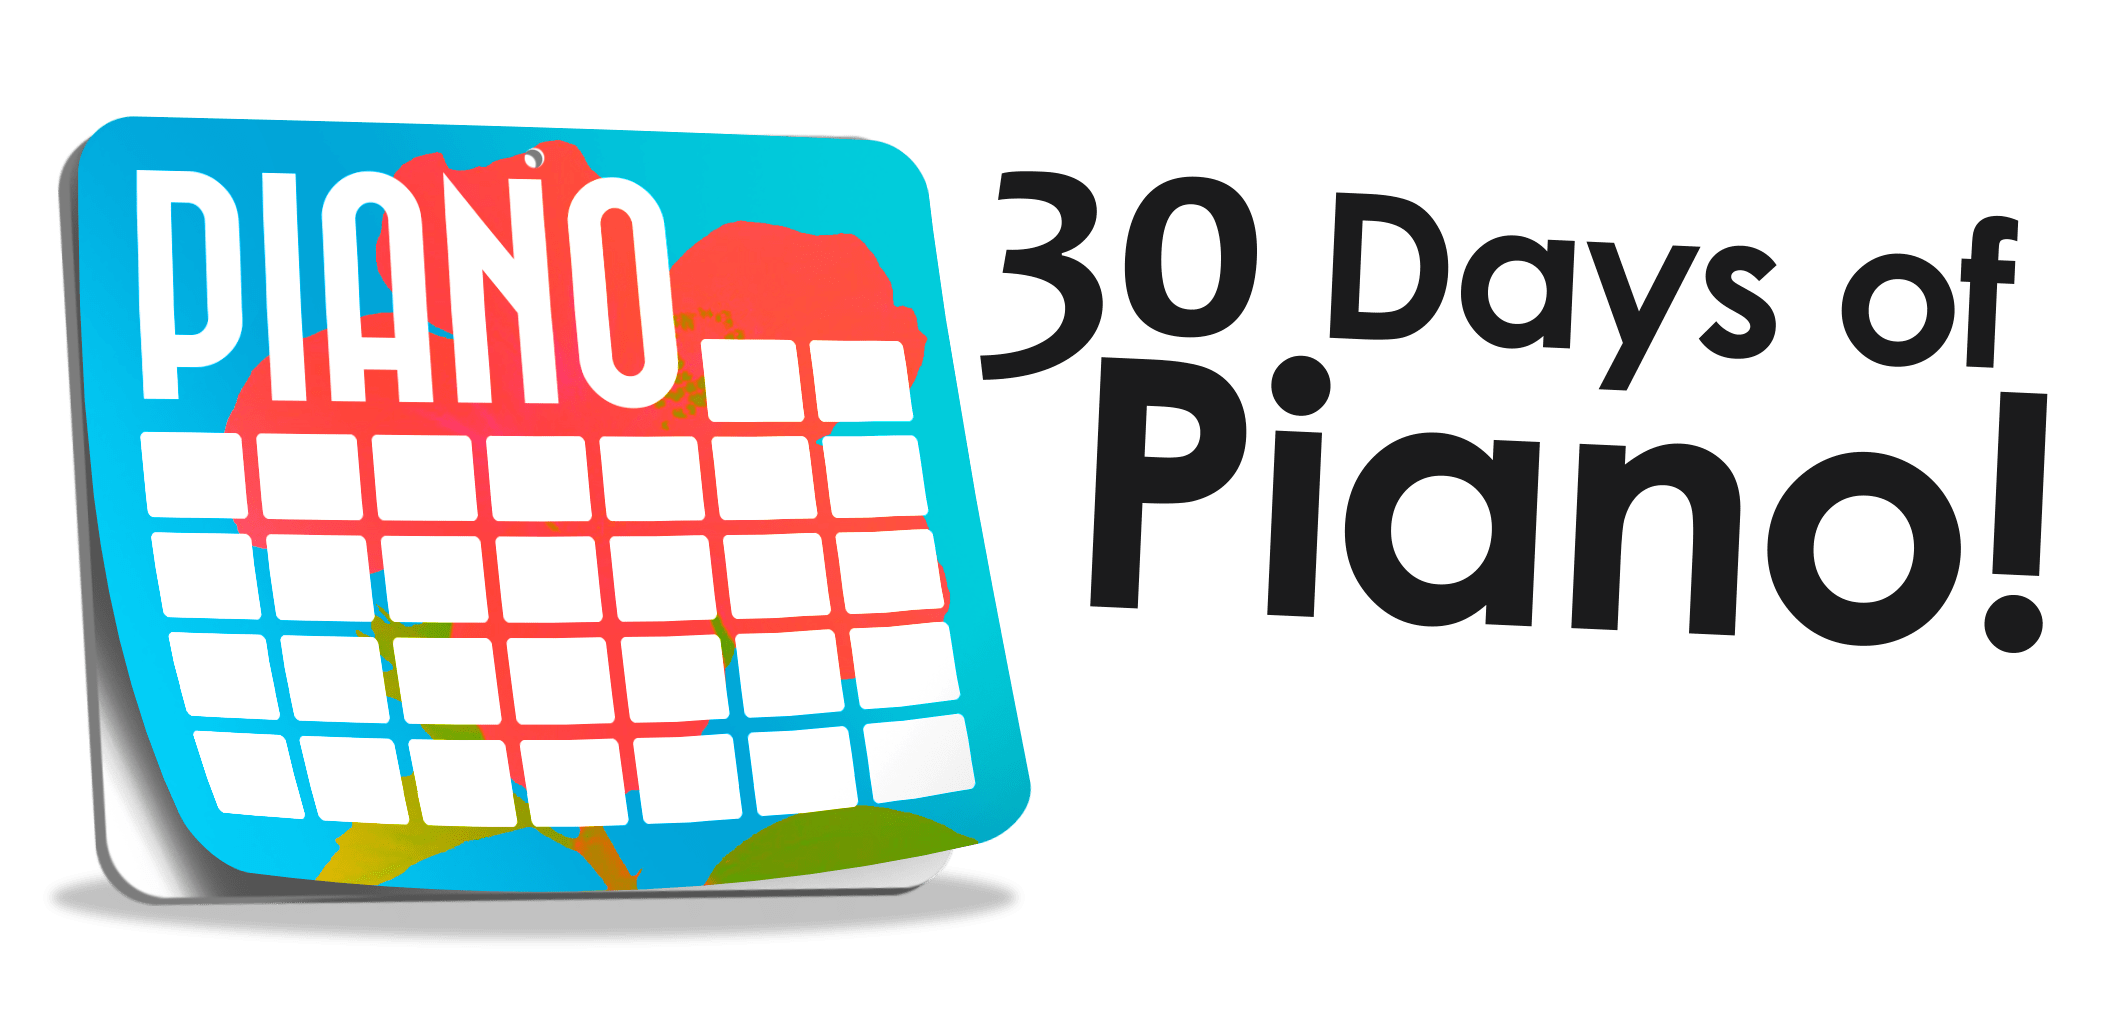 30 days of piano